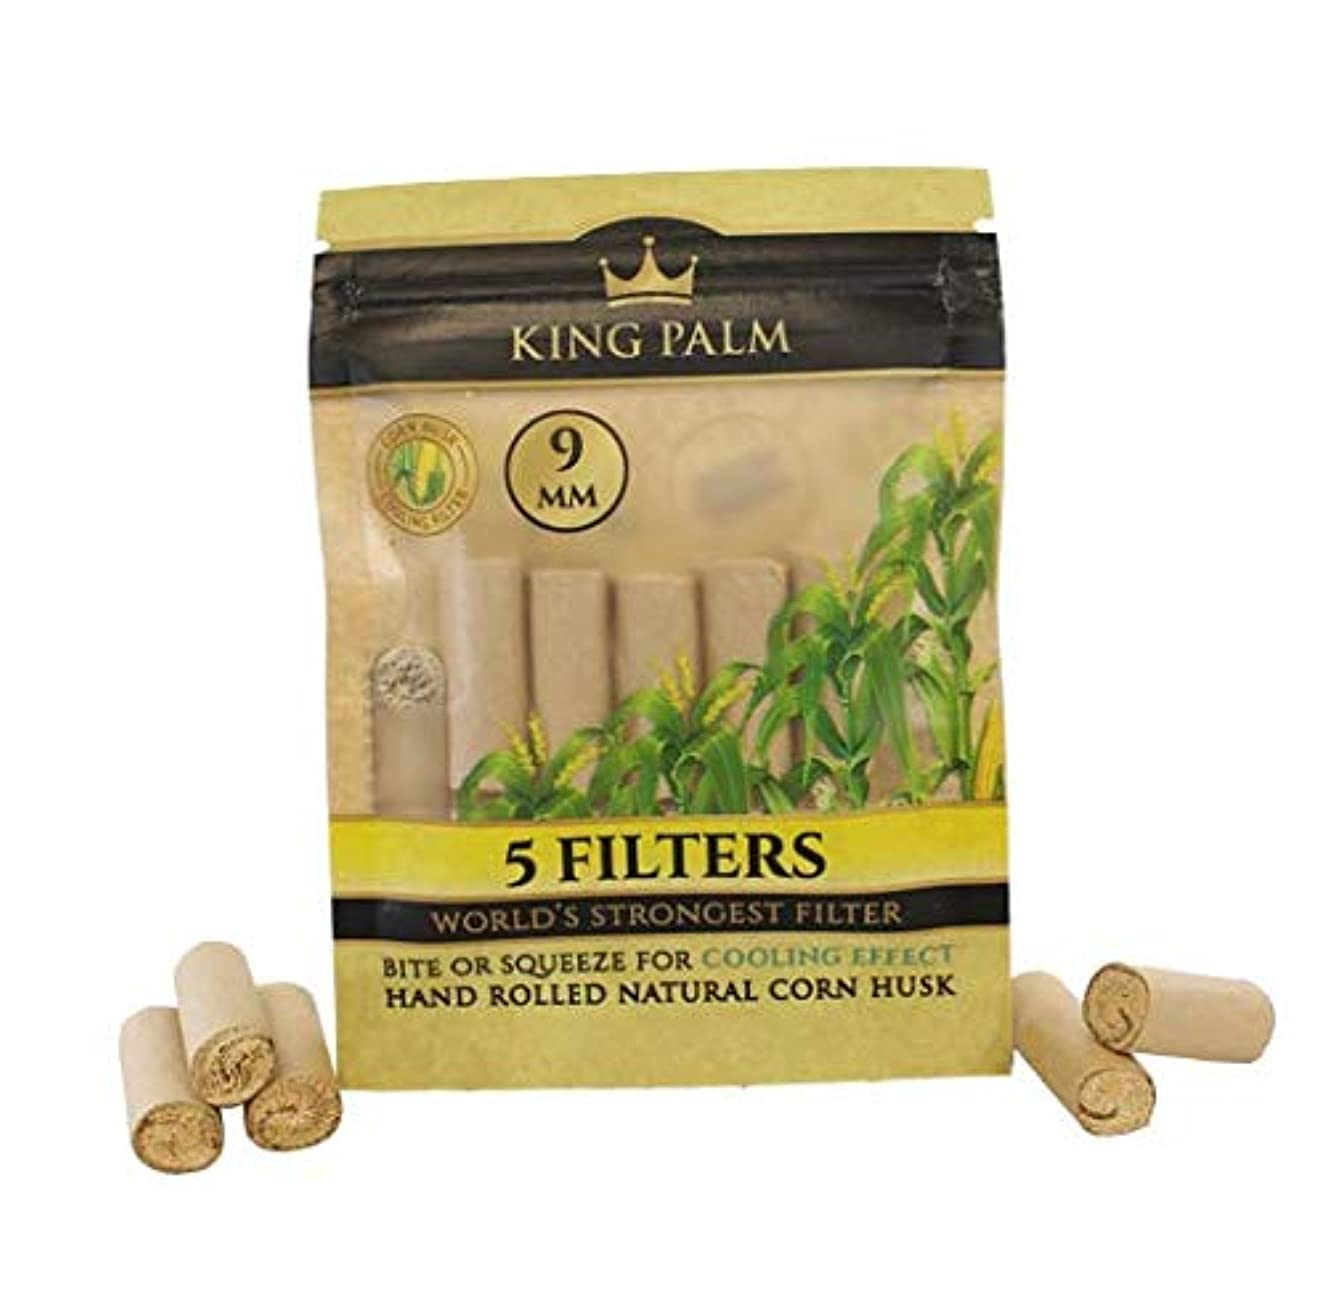 King Palms Hand Rolled Corn Husk Filters - 9mm - 5 Filters/Pack - (1 Pack)